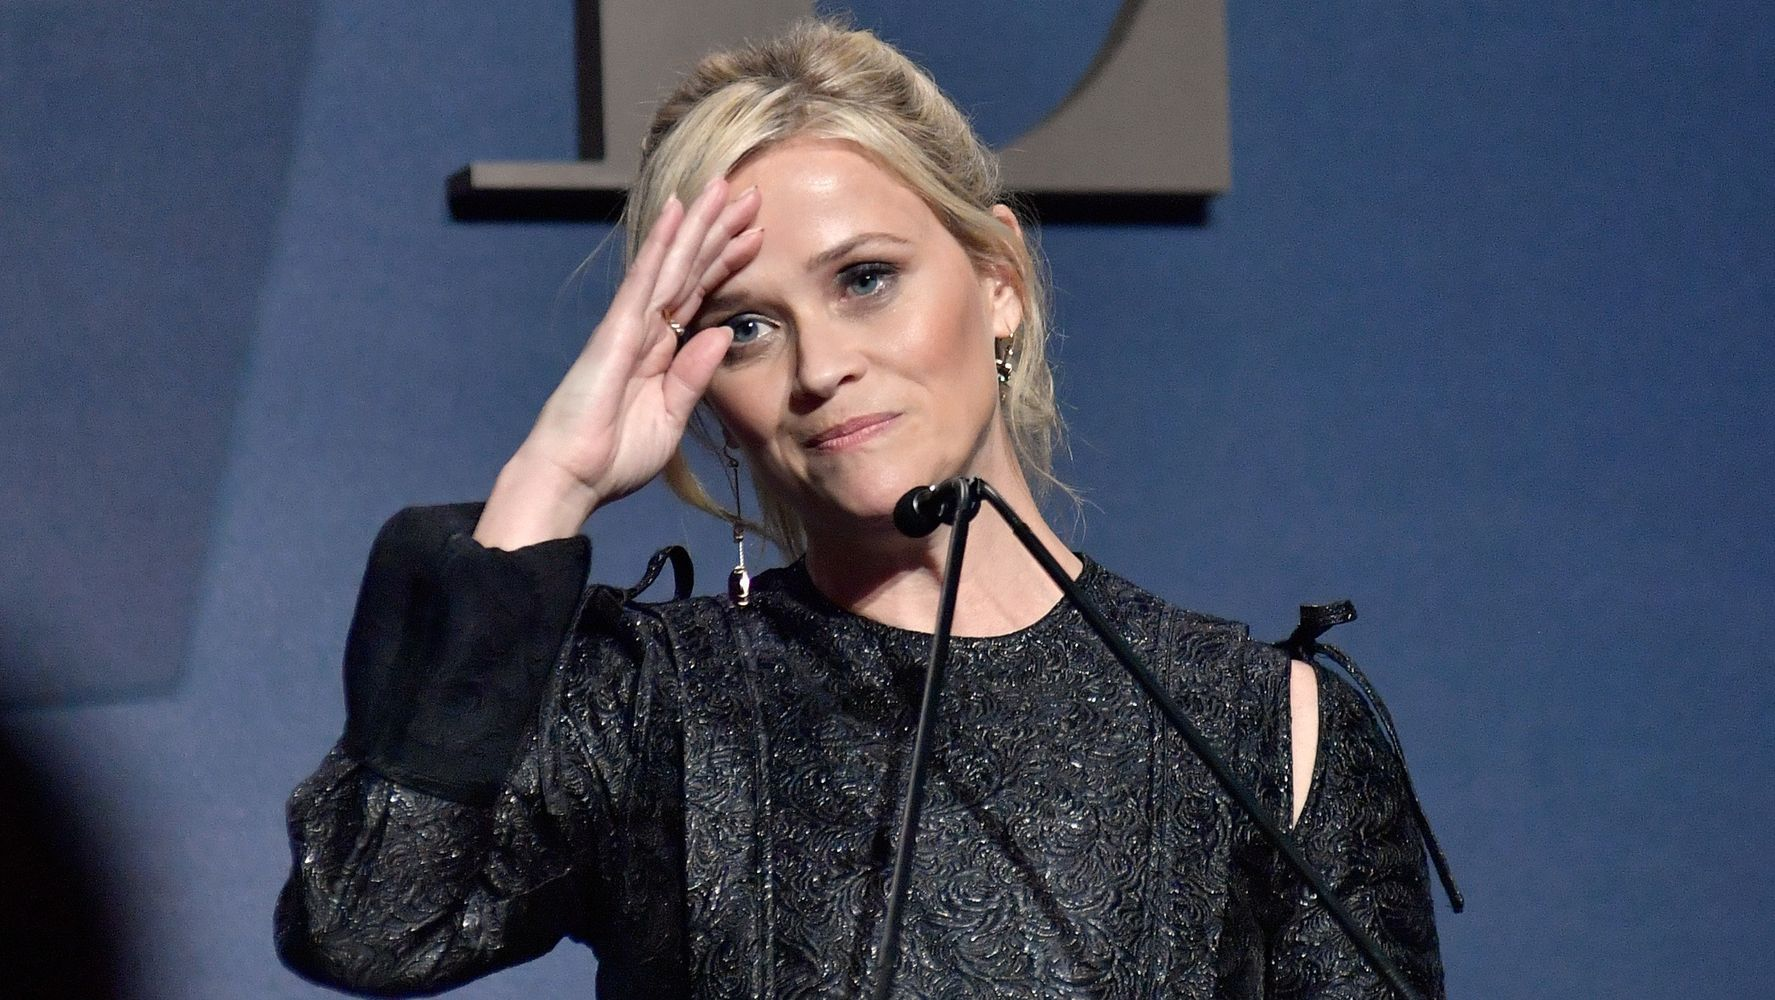 Ashley Judd Cunt reese witherspoon says a director assaulted her when she was